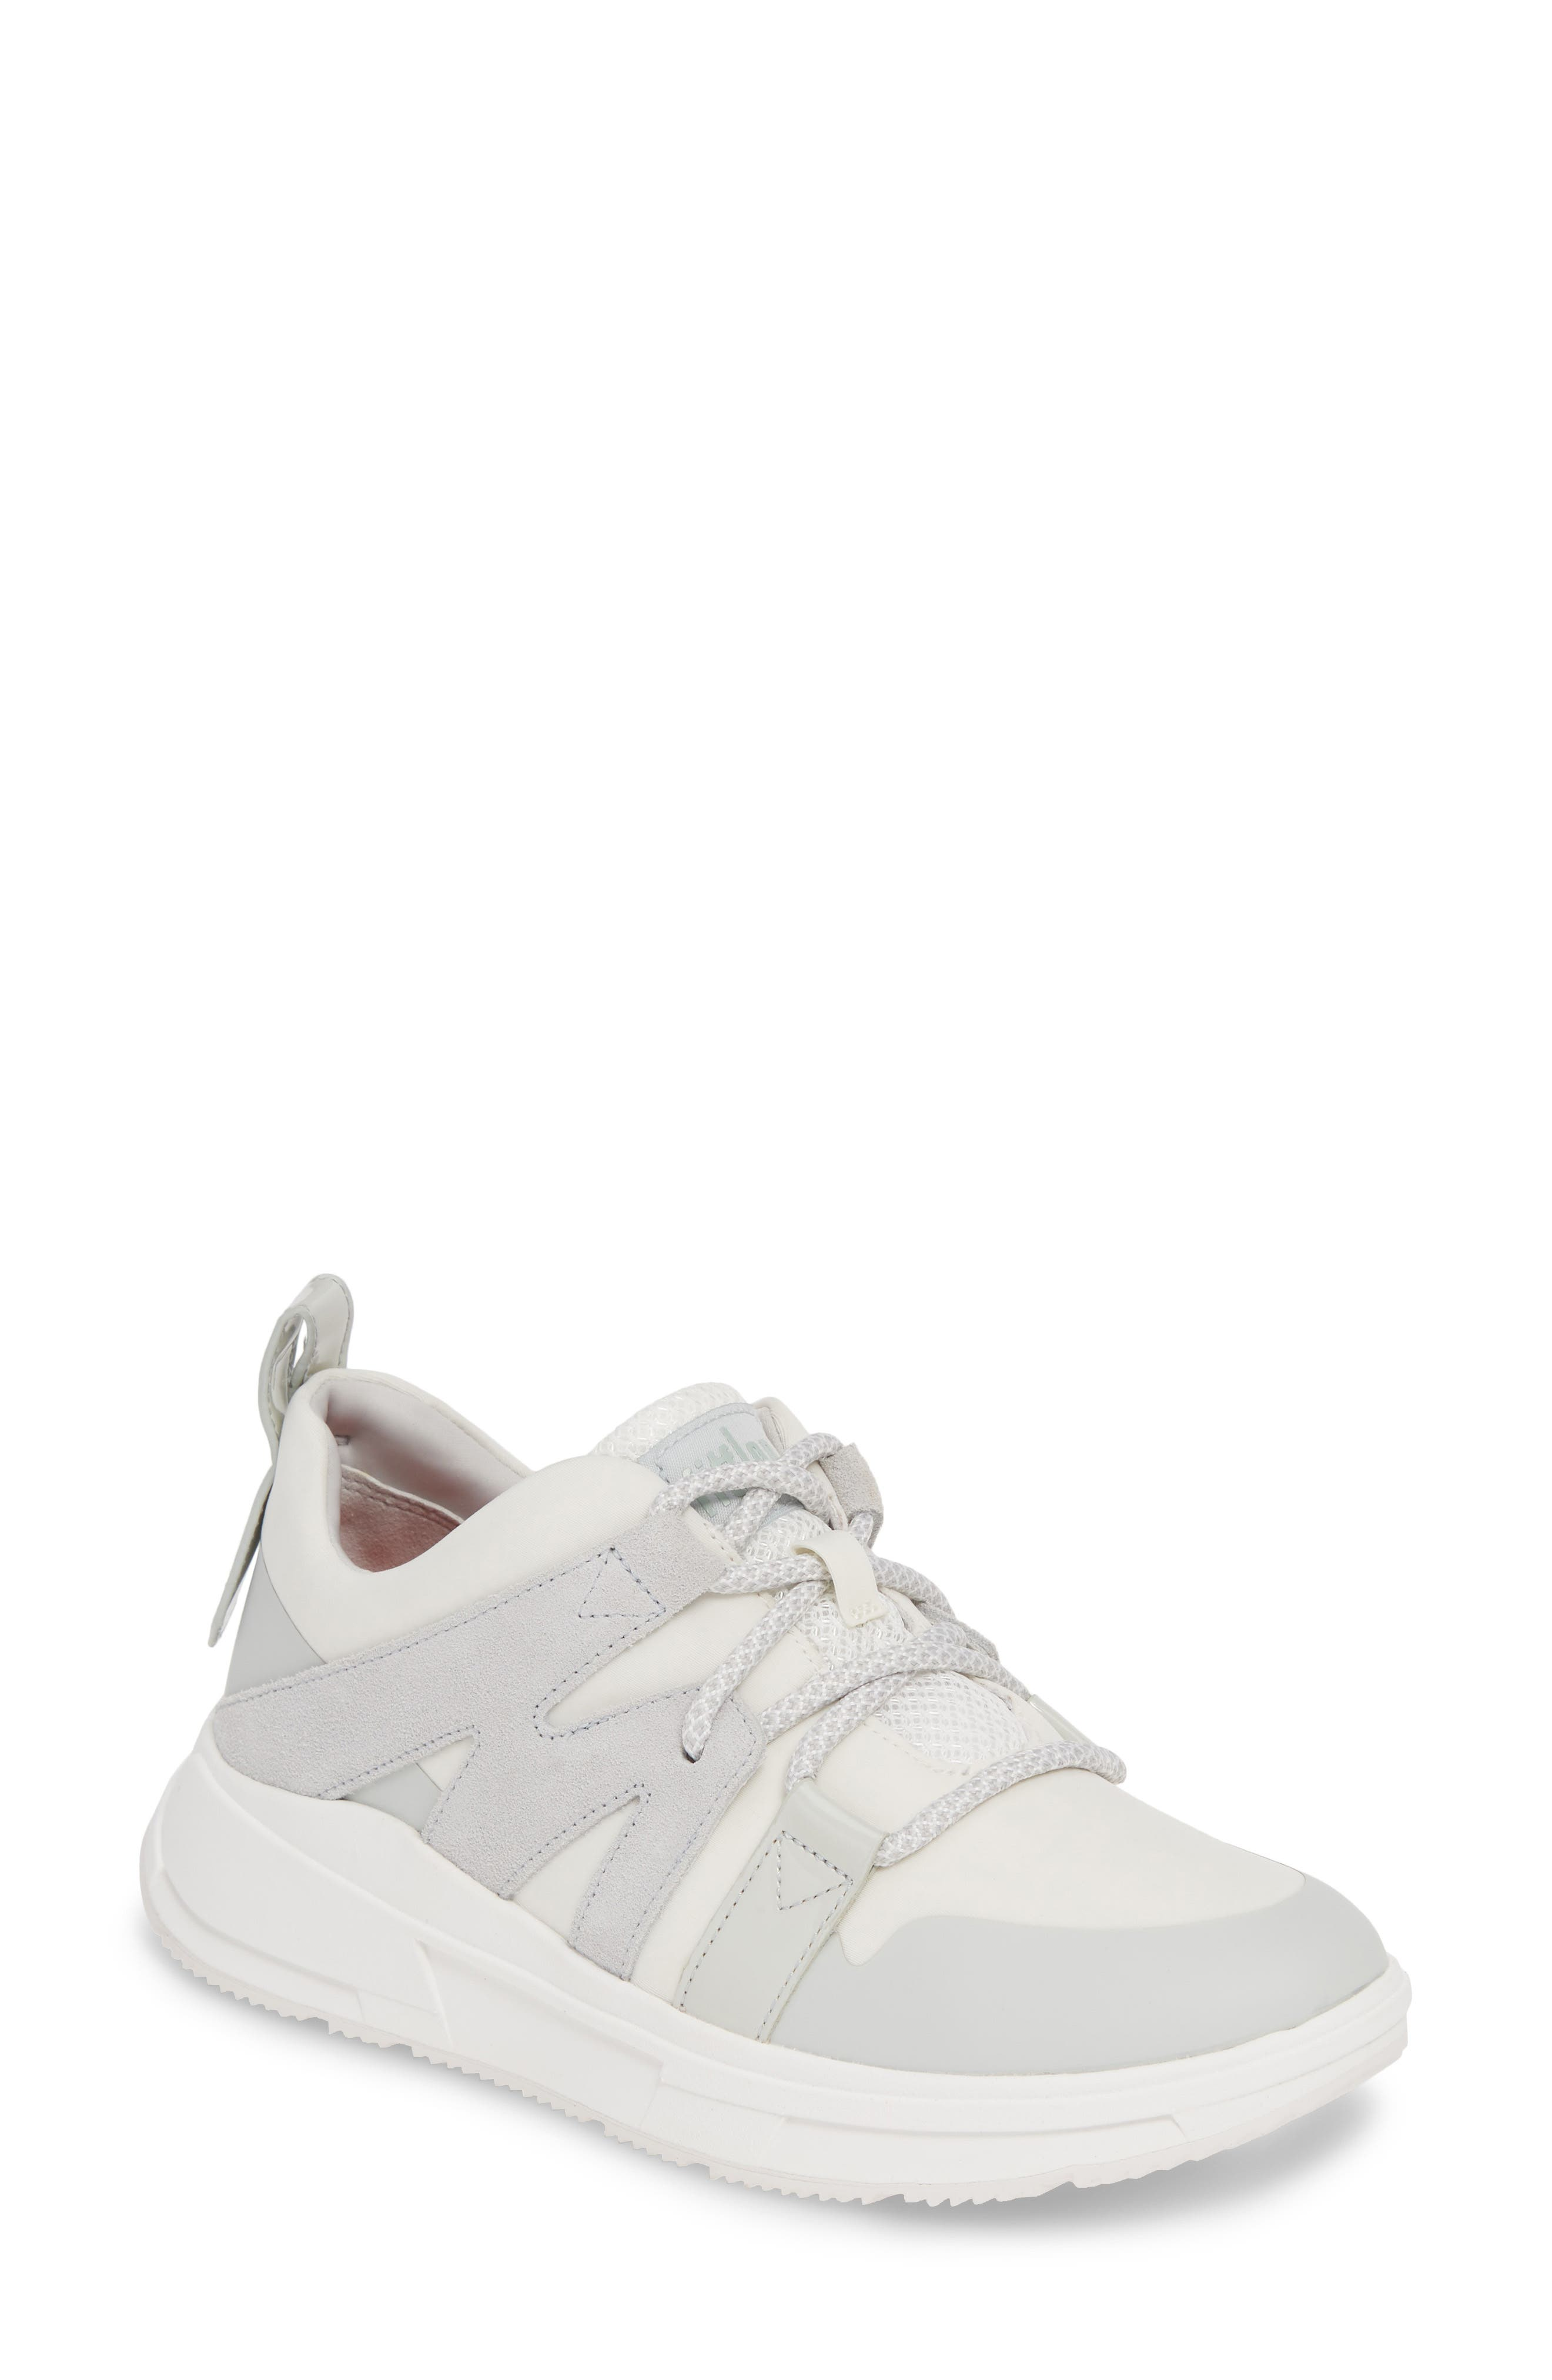 Women's Sneakers FitFlop Shoes   Nordstrom